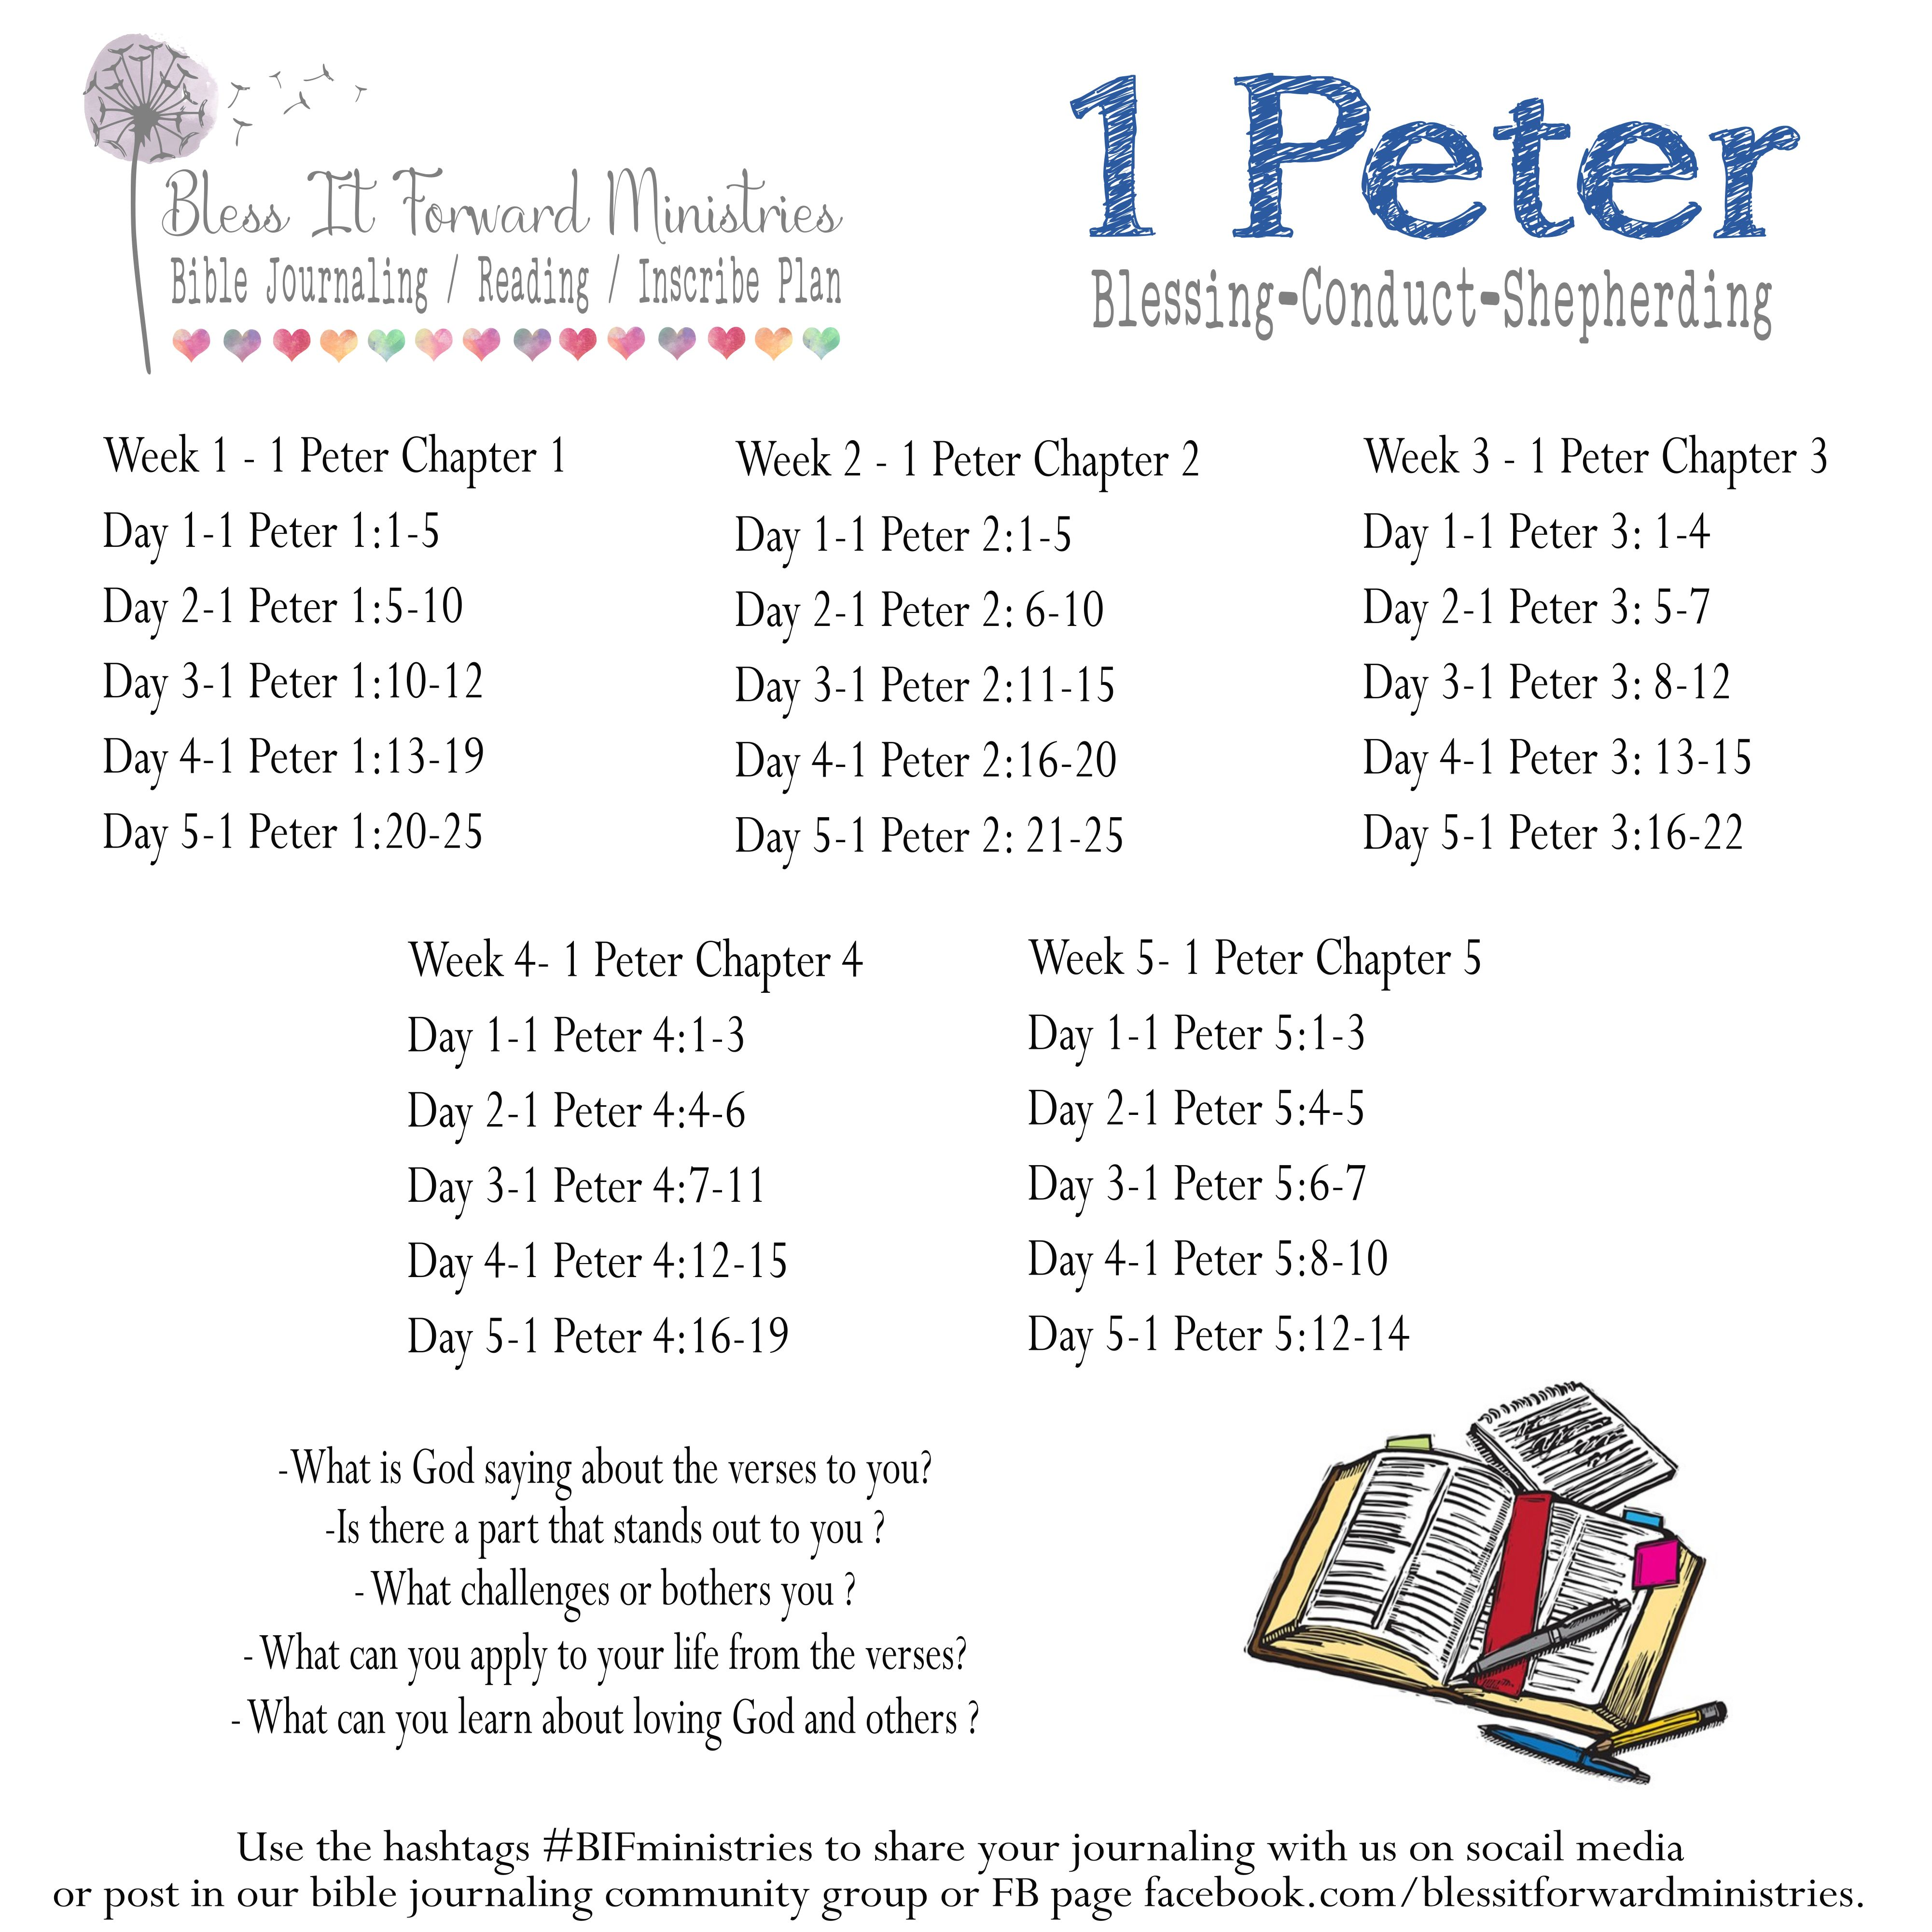 A new book of the bible plan available to download for